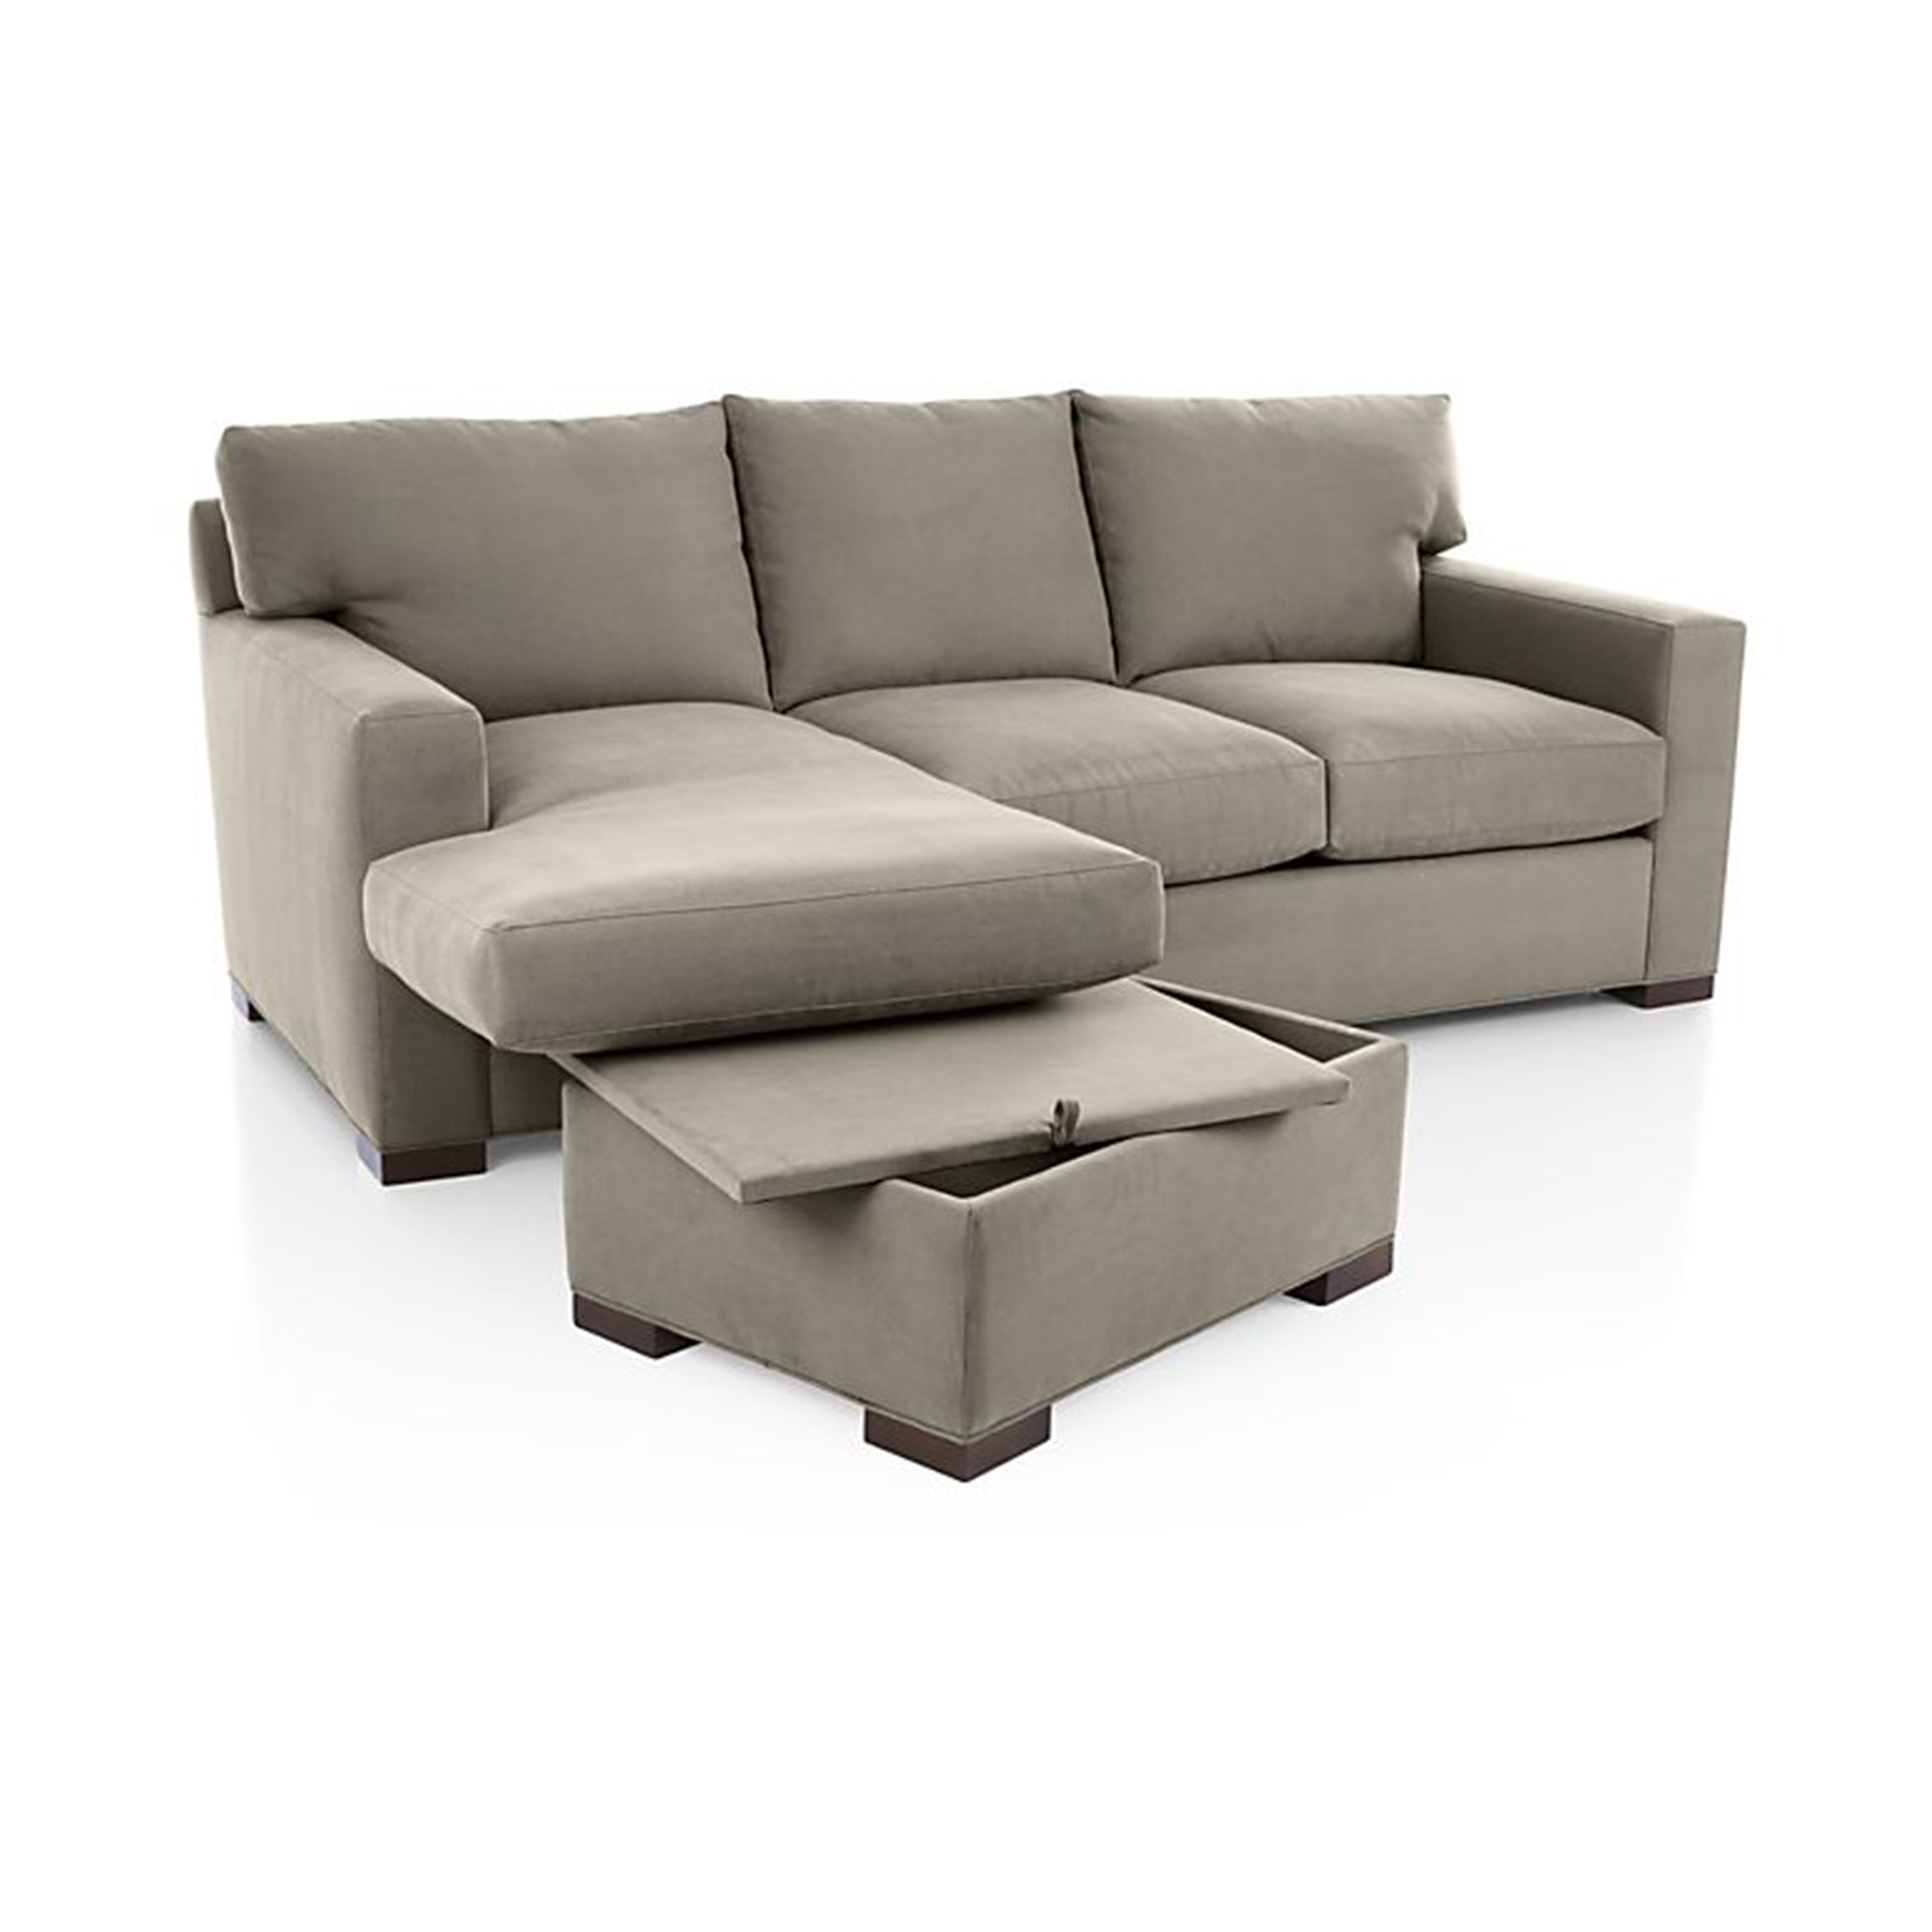 Hot Selling Single Arm Two Seat Plus Single Arm Chaise Sectionla Sofa China I Type Living Room Sofas Buy China Sofa L Type I Shape Sofa Loving Room Sofa Living Product On Alibaba Com